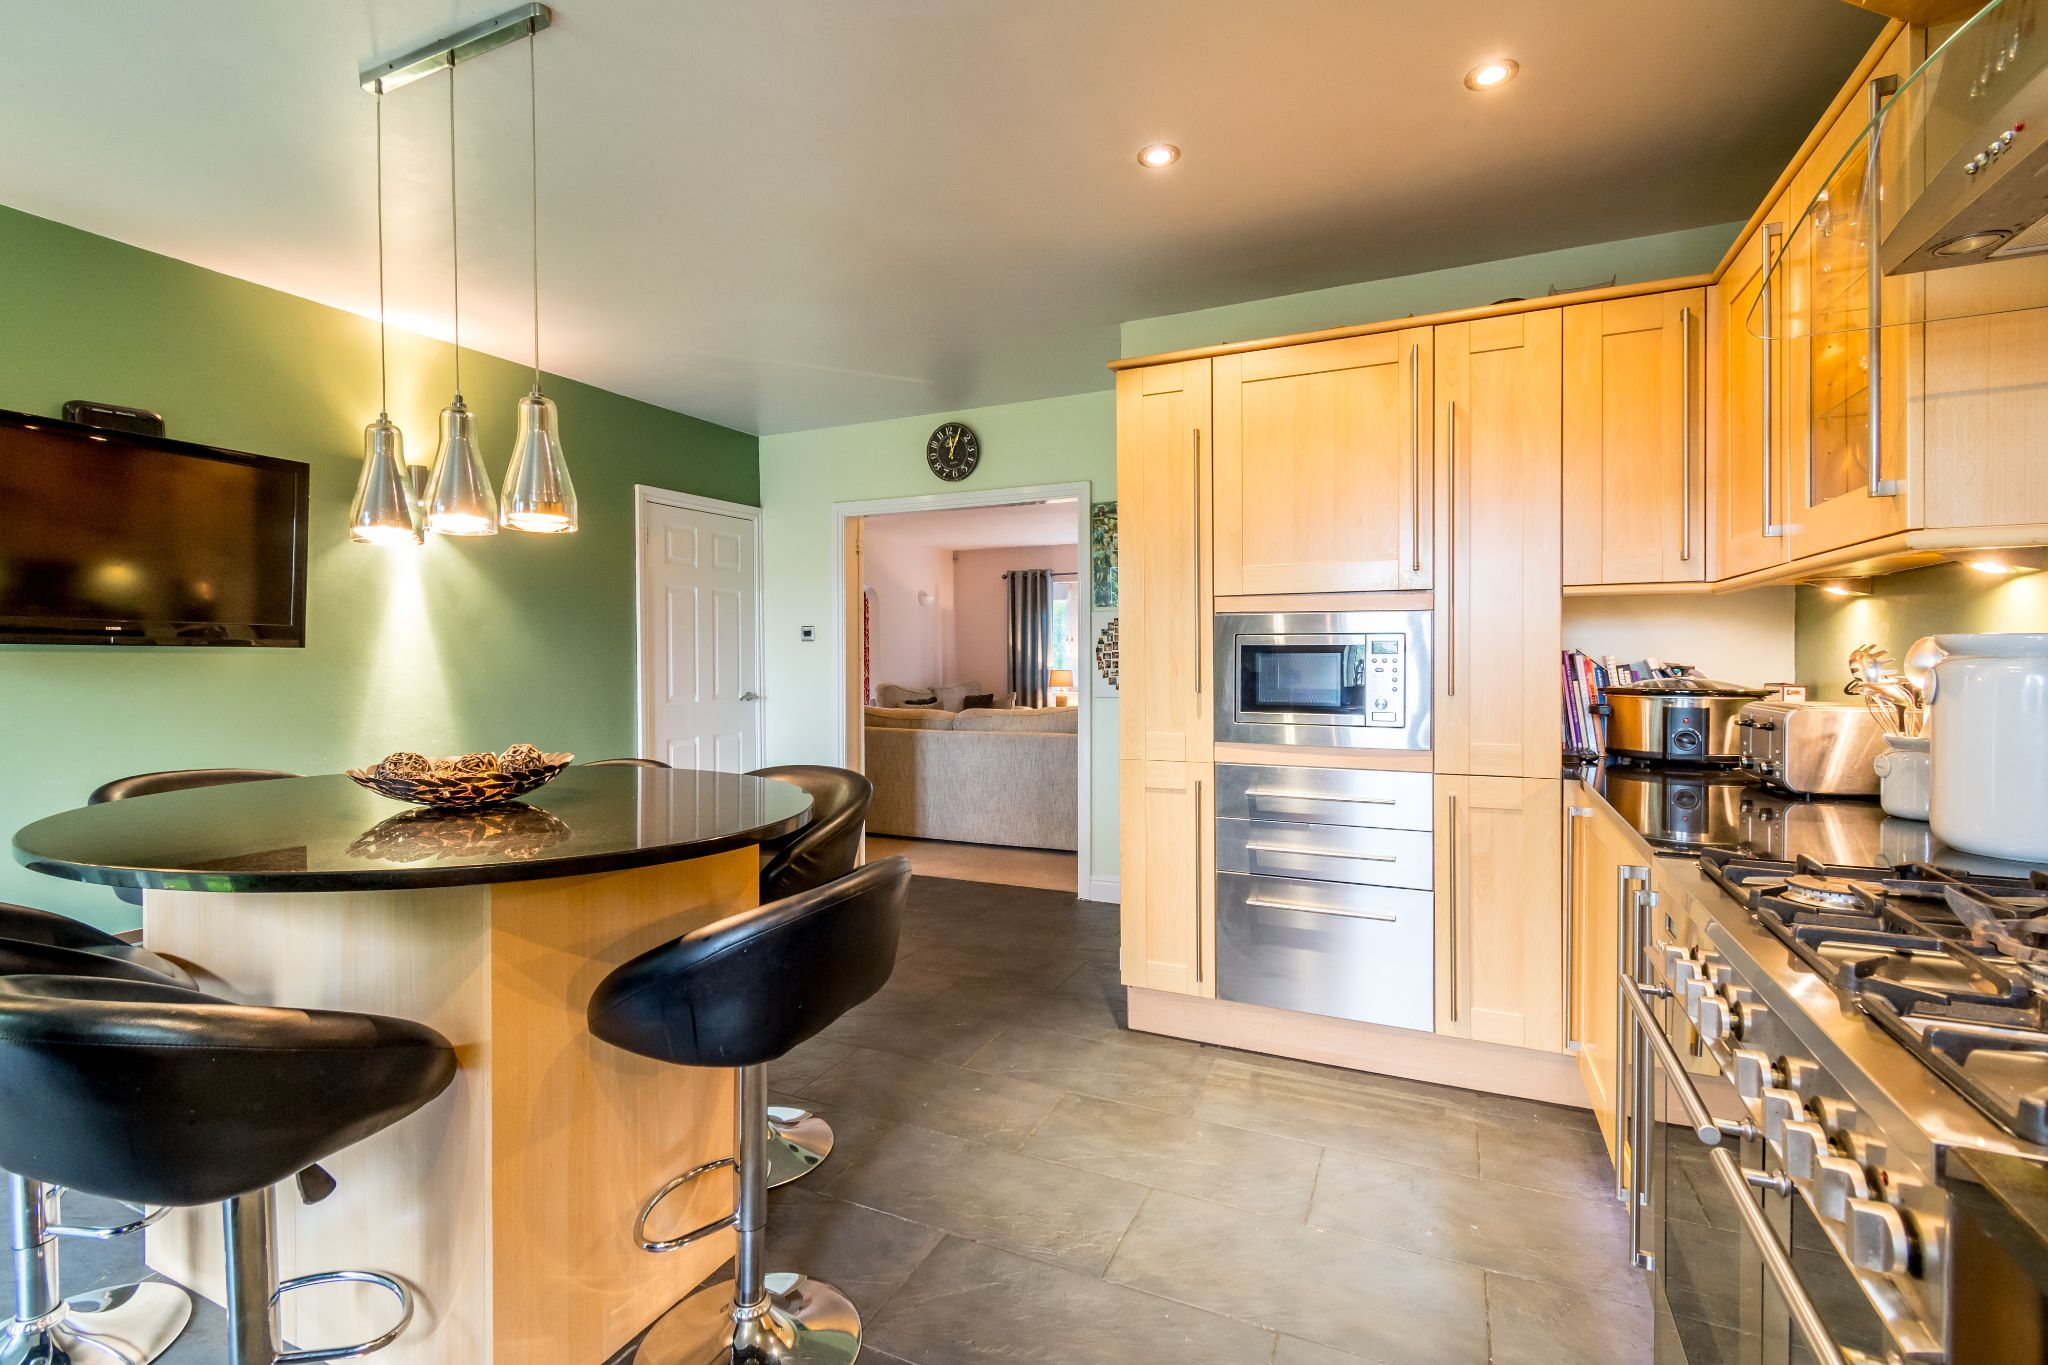 5 bedroom detached house SSTC in Brighouse - Kitchen